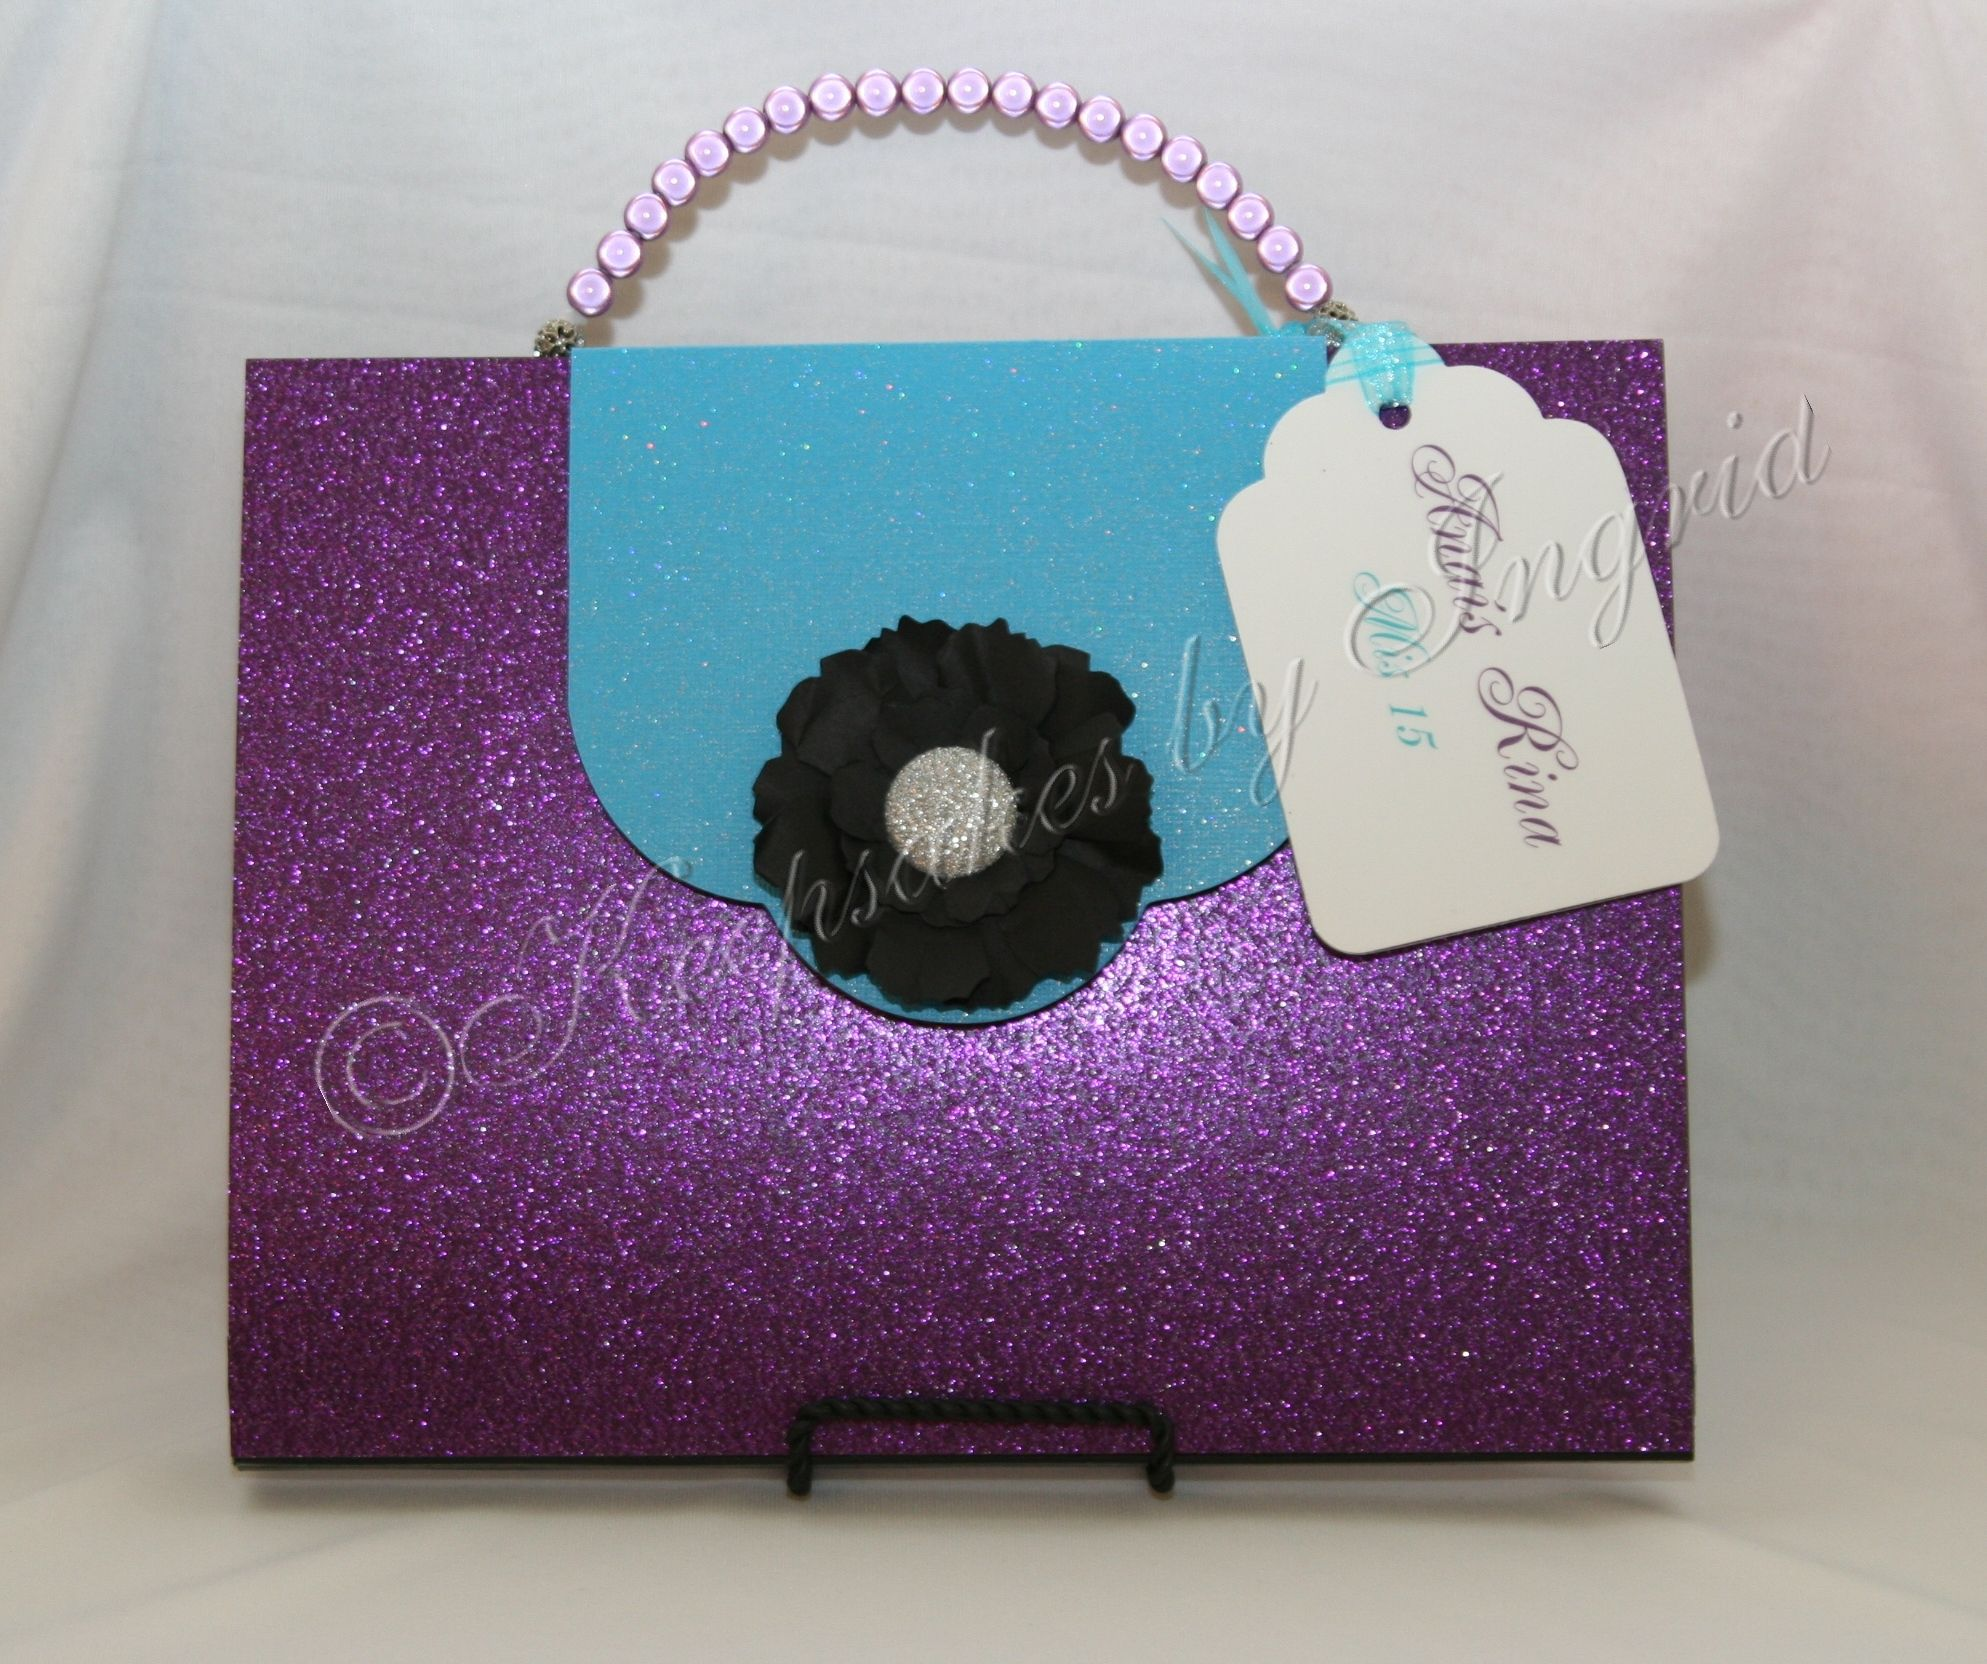 Fashion themed #quinceañero guest book #sweetsixteen #guestbook  Go see my creations at https://www.facebook.com/pages/Keepsakes-by-Ingrid/160451074008627